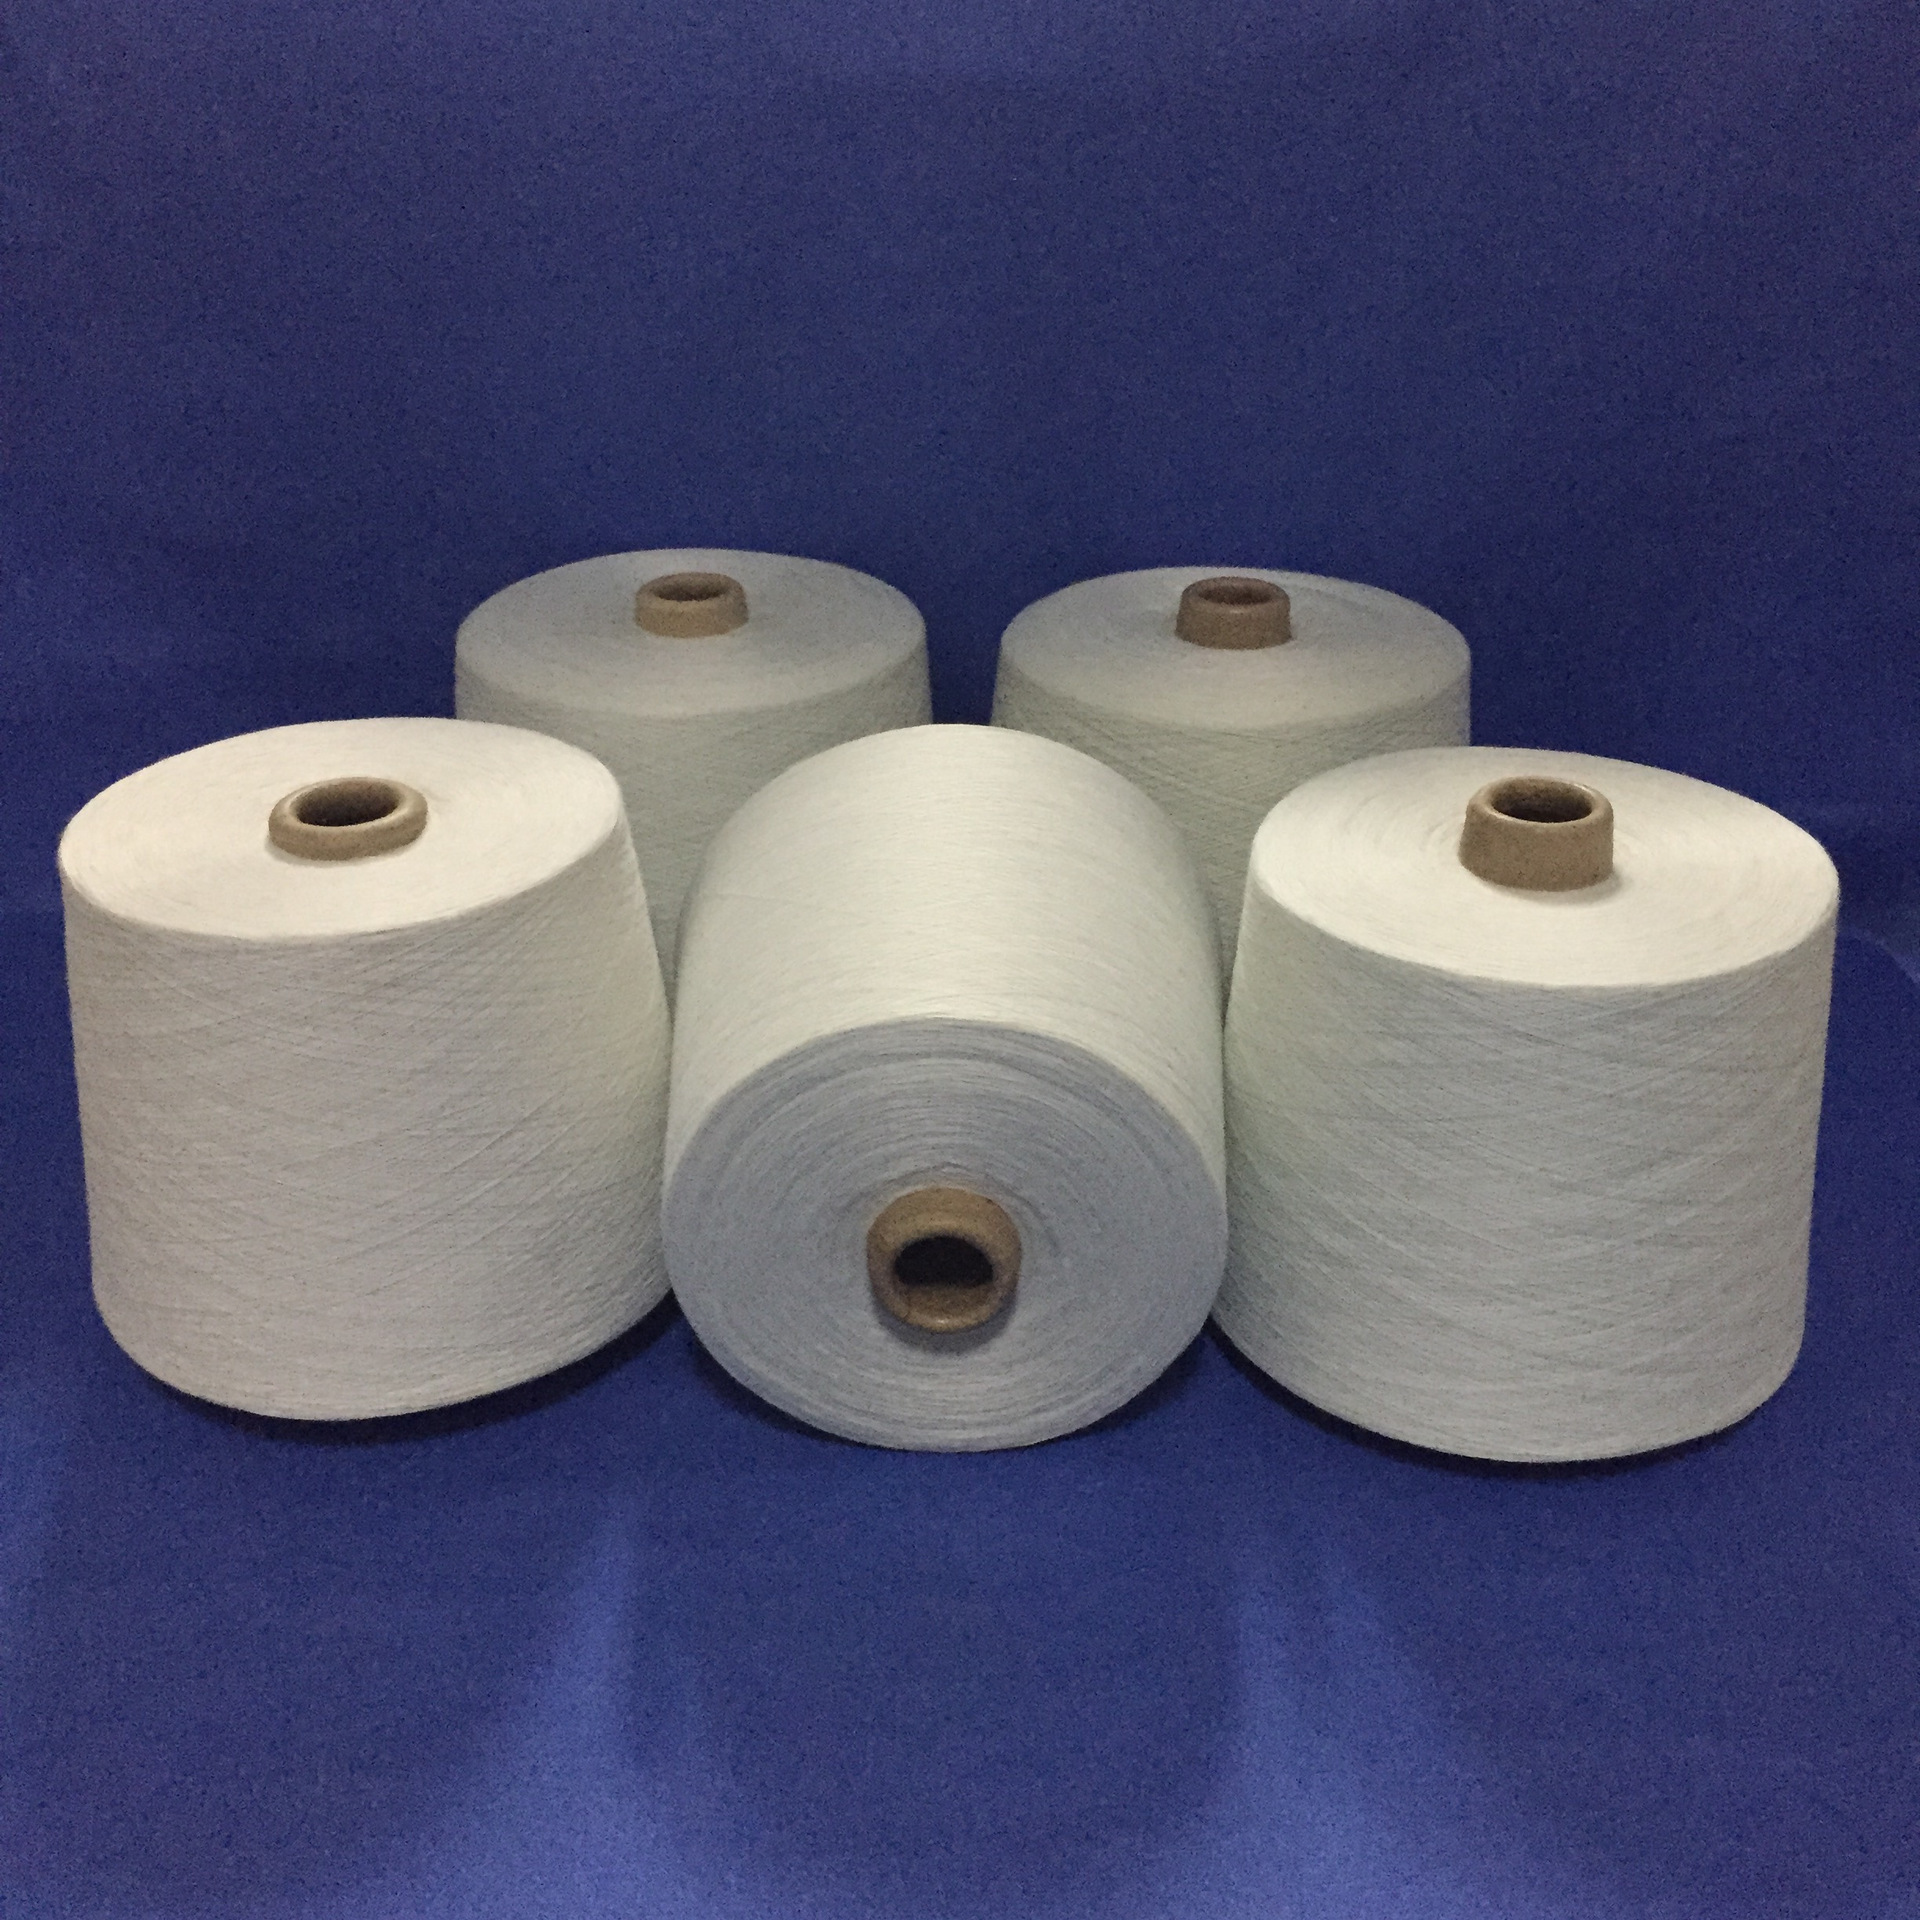 Polyester/cotton yarn T/C65/35 32 count blended yarn for self-winding knitting machine weaving and p